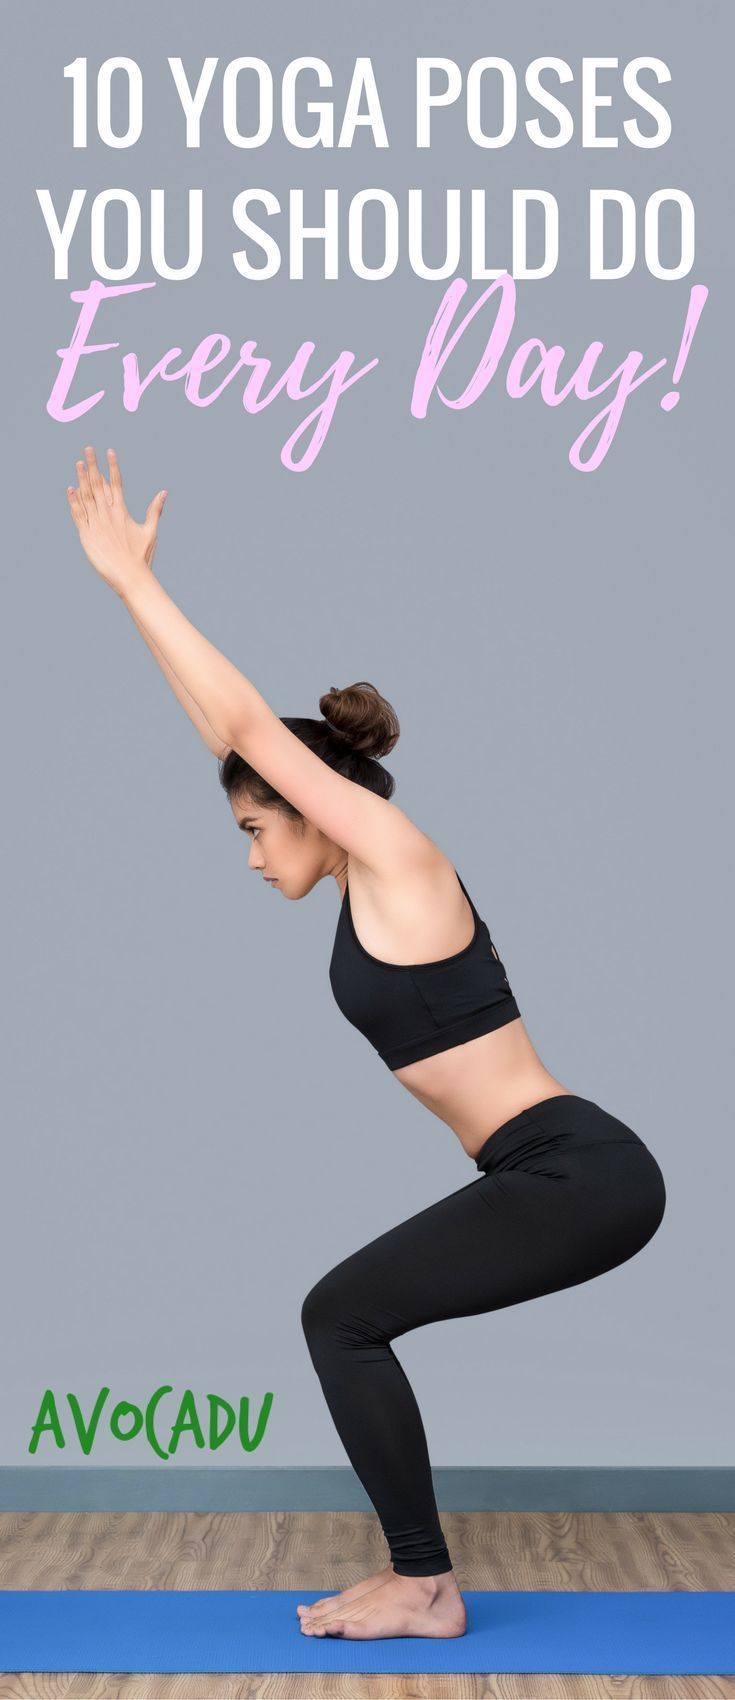 10 Yoga poses you should do every day to get flexible, relieve aches and pains, ...